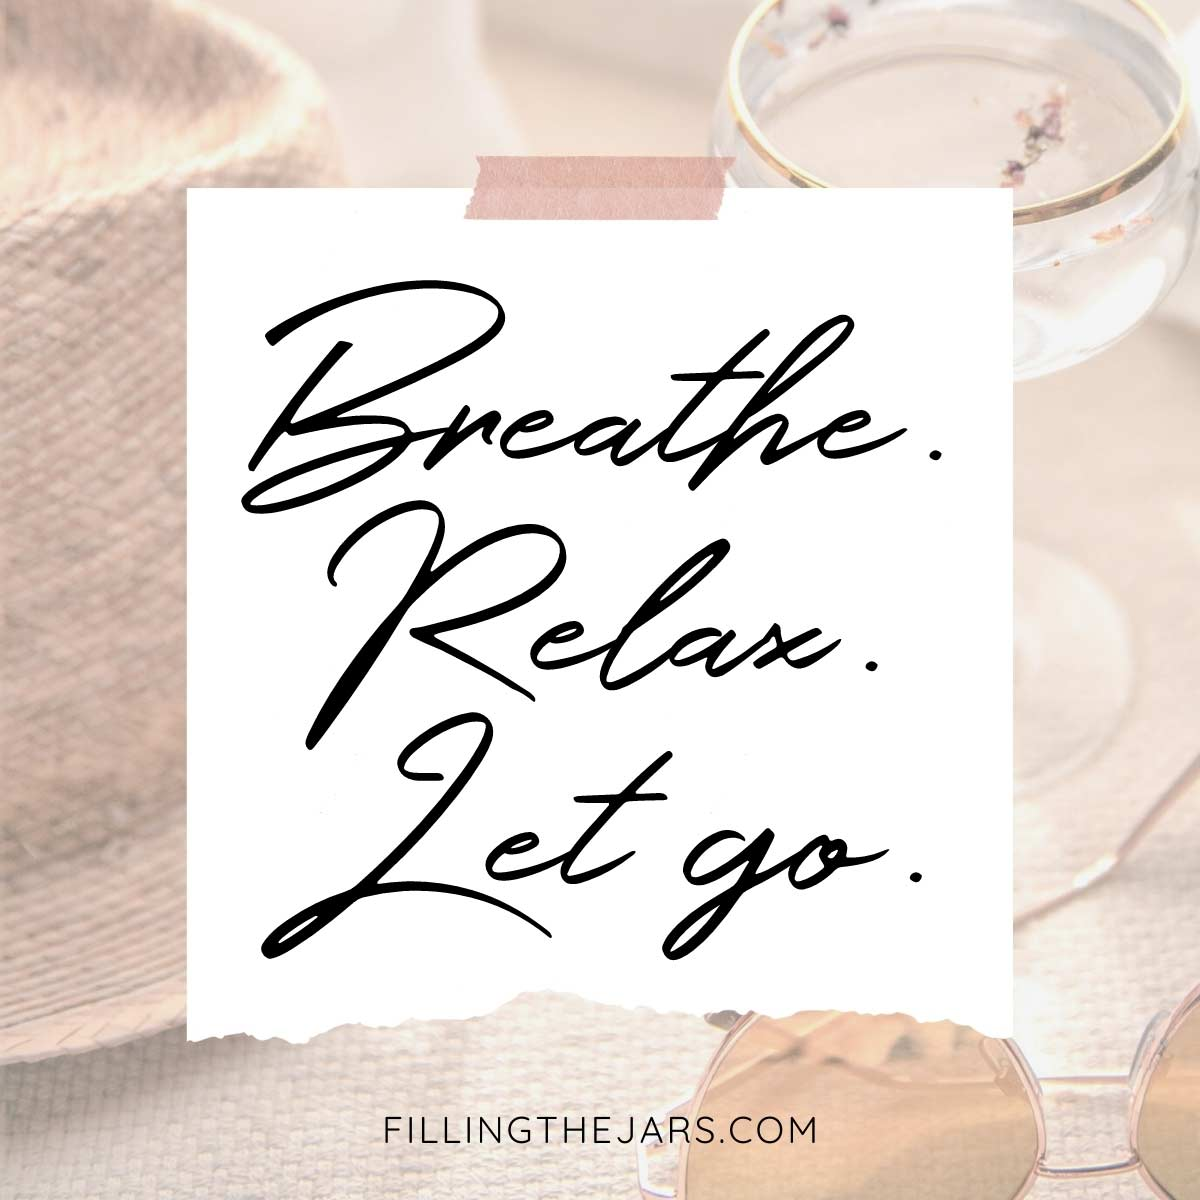 Text breathe relax let go on white background over image of sunglasses, stem glass and straw hat on woven white cloth.